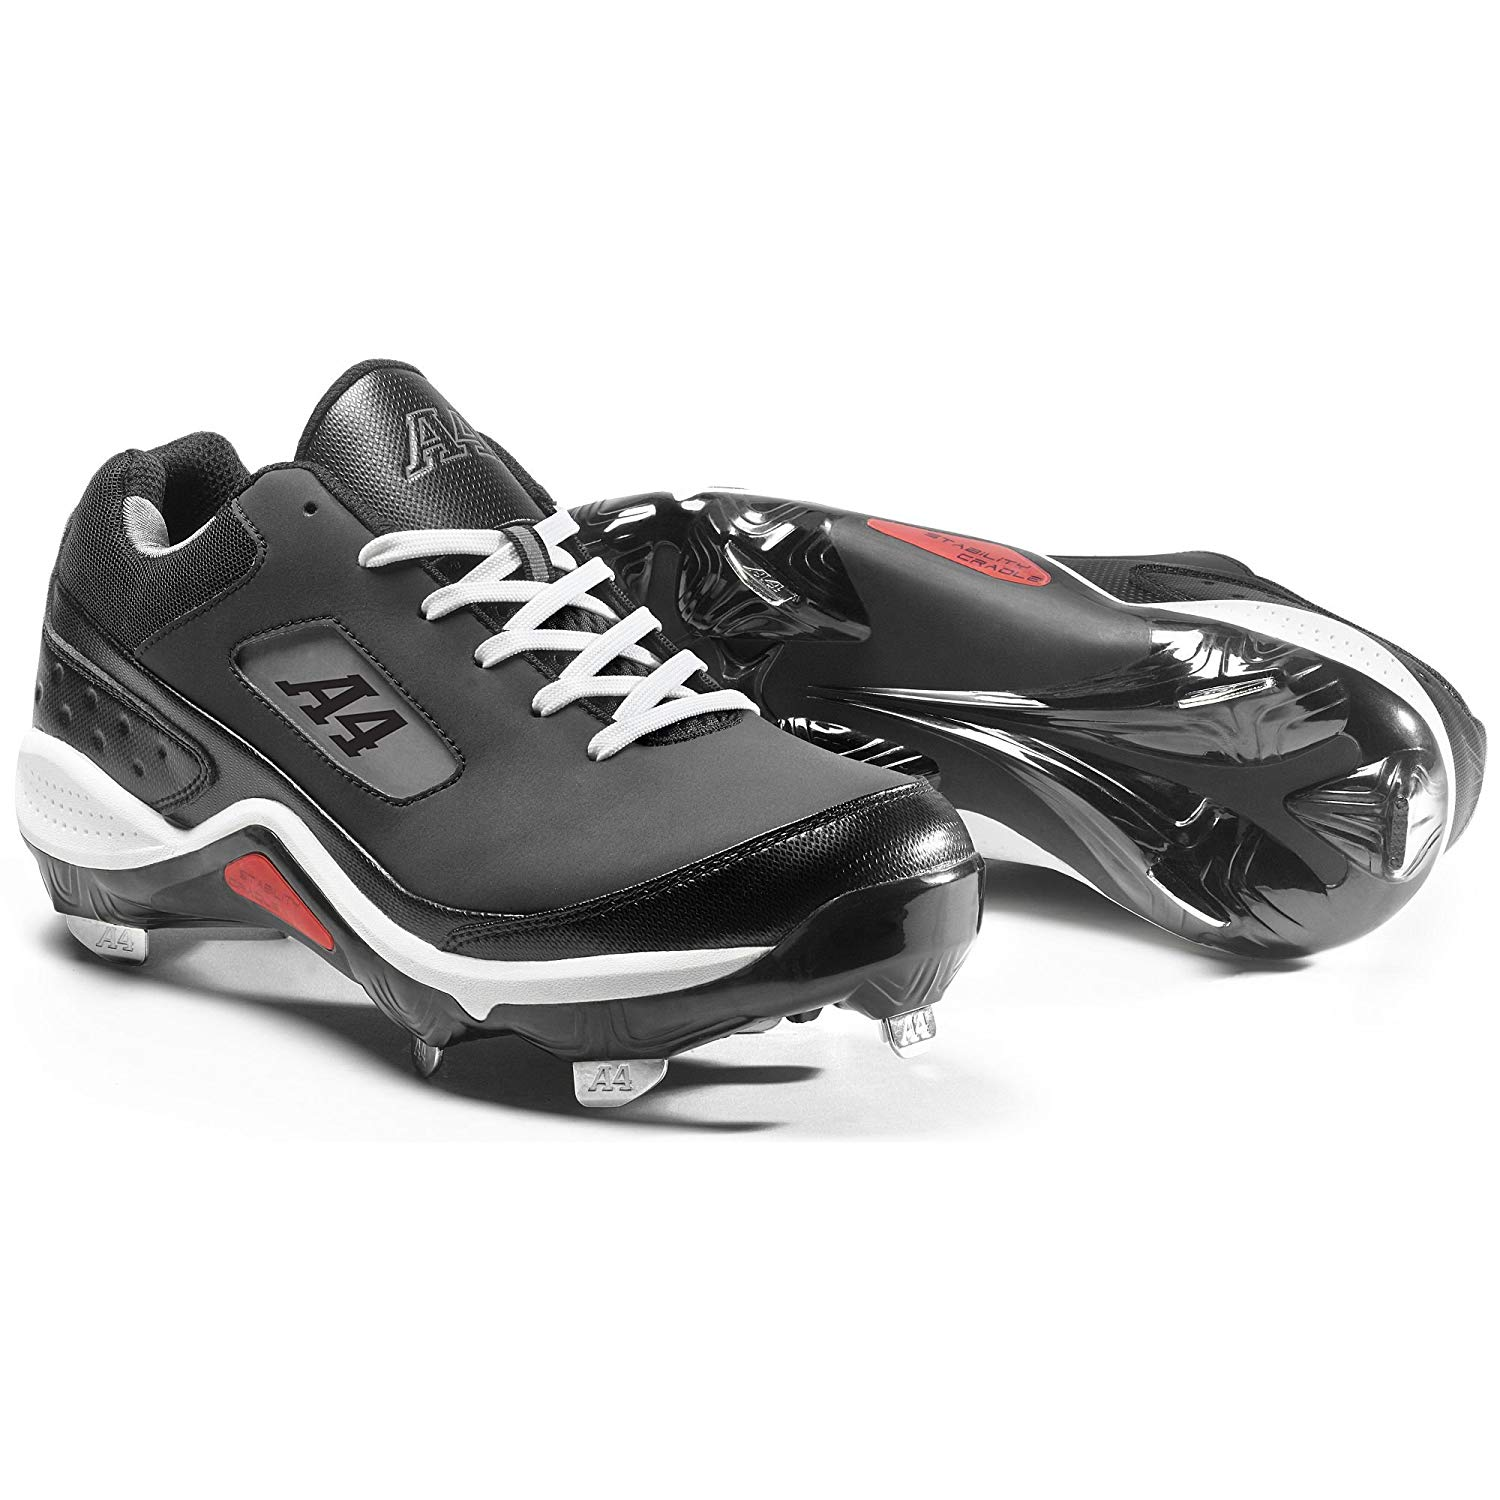 5ff1df4913a Get Quotations · Metal Pro ST Baseball Cleats (Lightweight Durable Spikes  for Babe Ruth